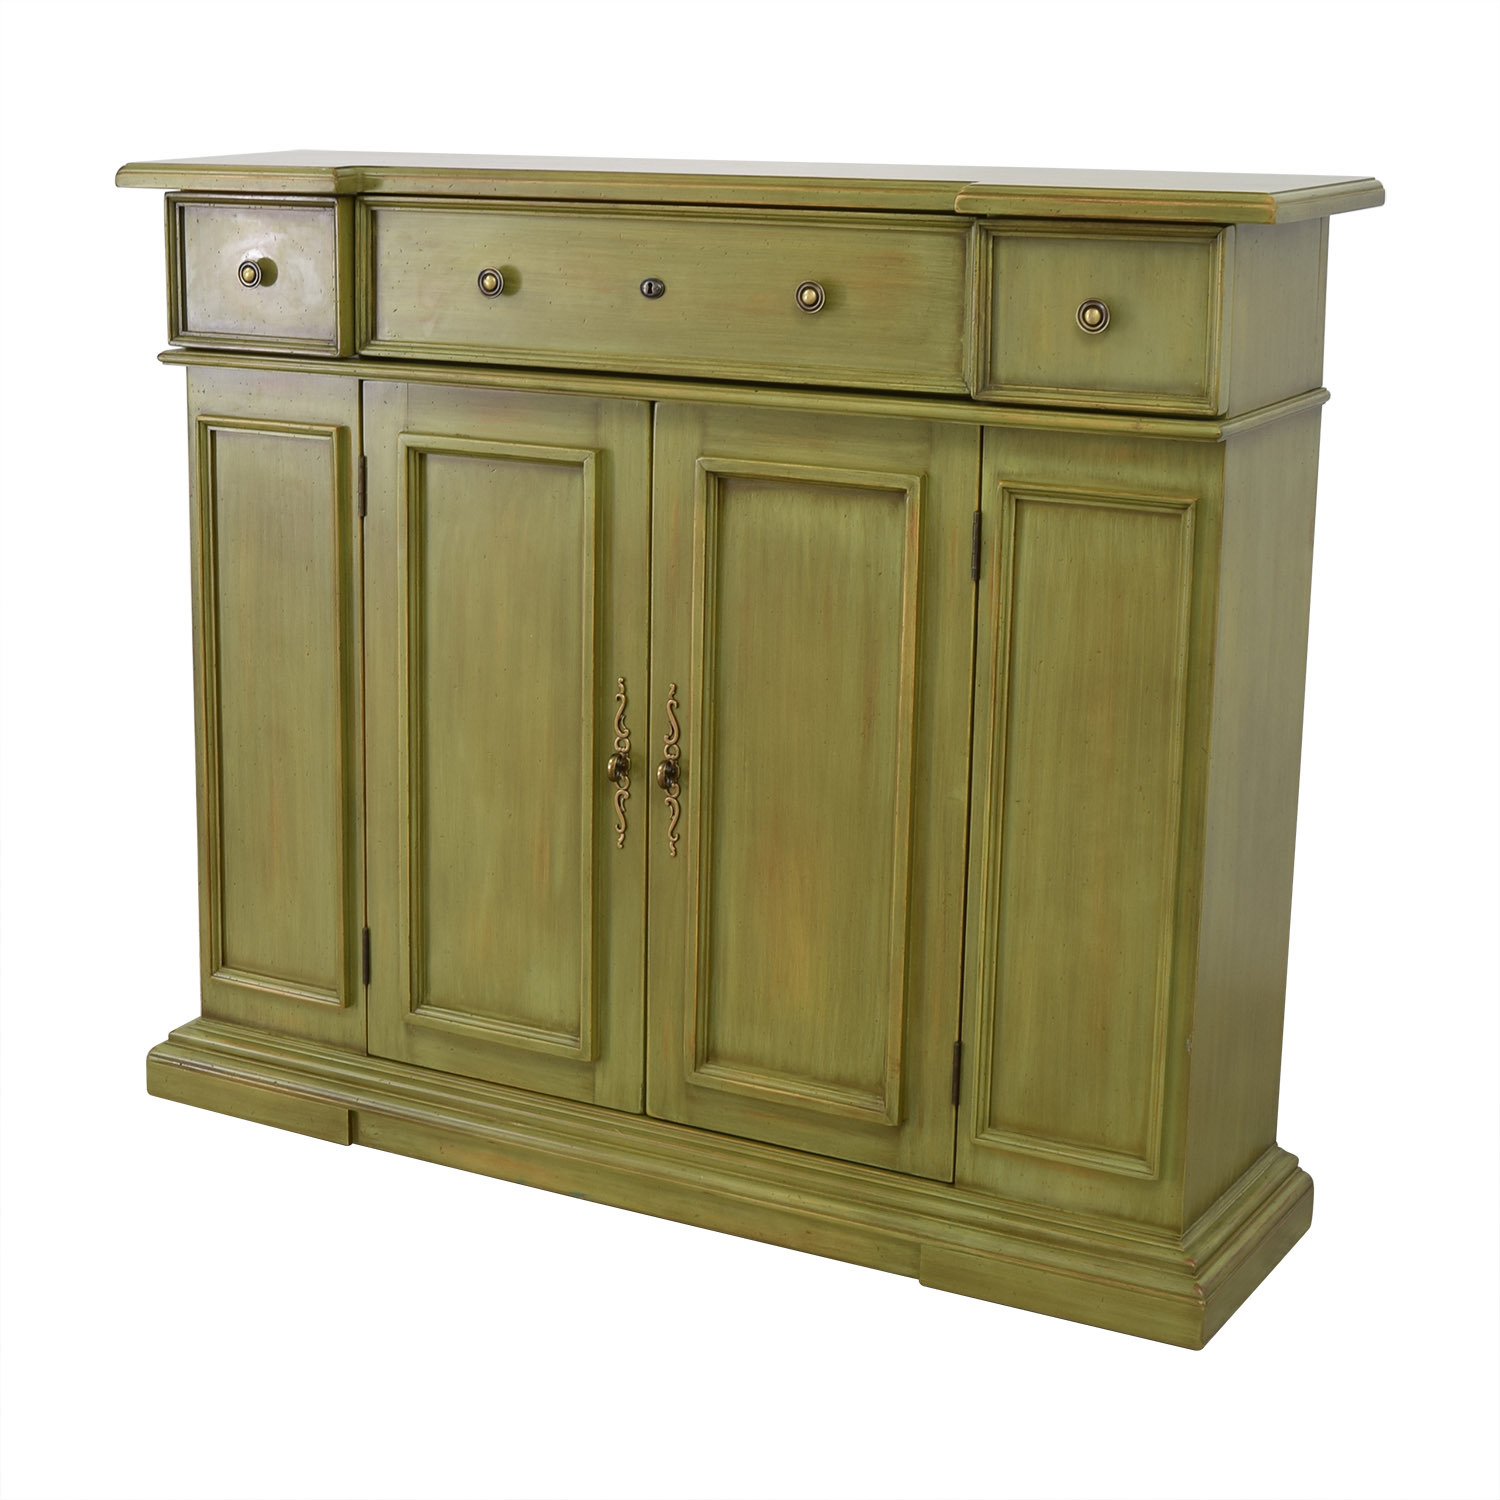 Breakfront Lime Green Cabinet With Storage / Cabinets & Sideboards